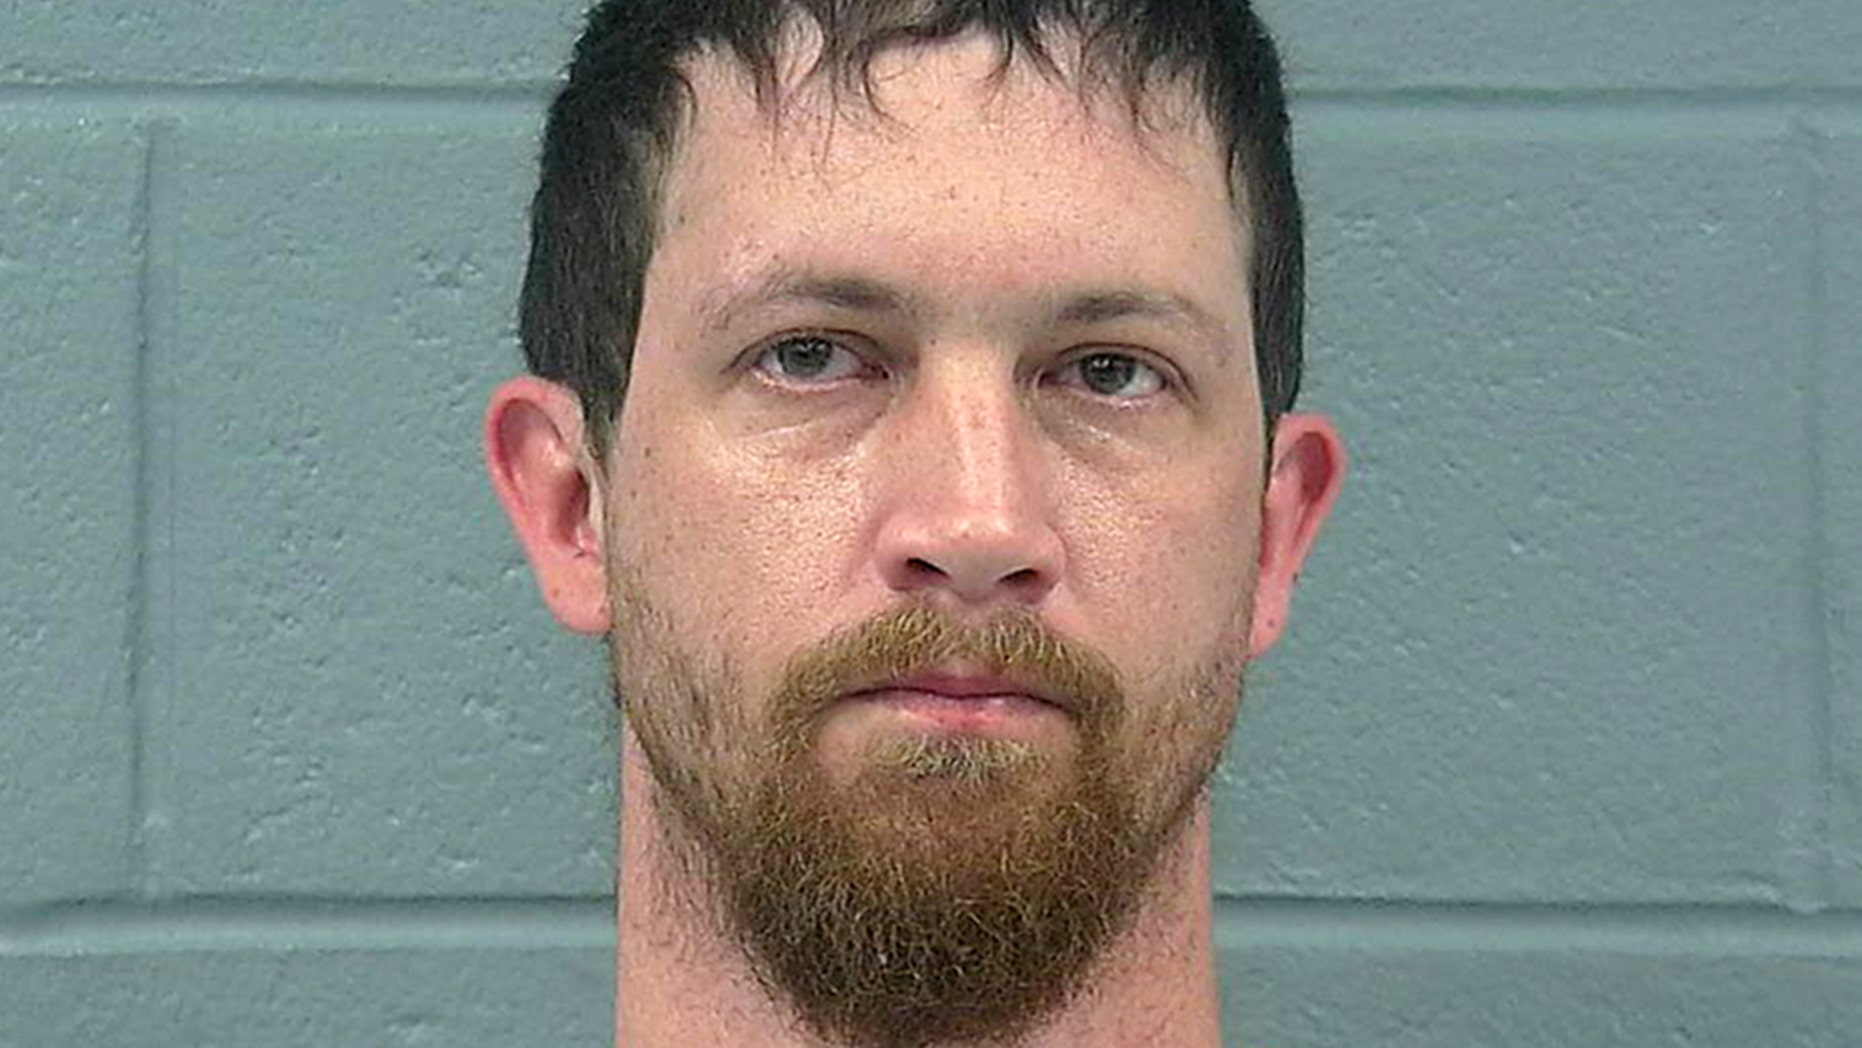 Michael Joseph Jensen allegedly told his 12-year-old son to light himself on fire as a way to commit suicide.